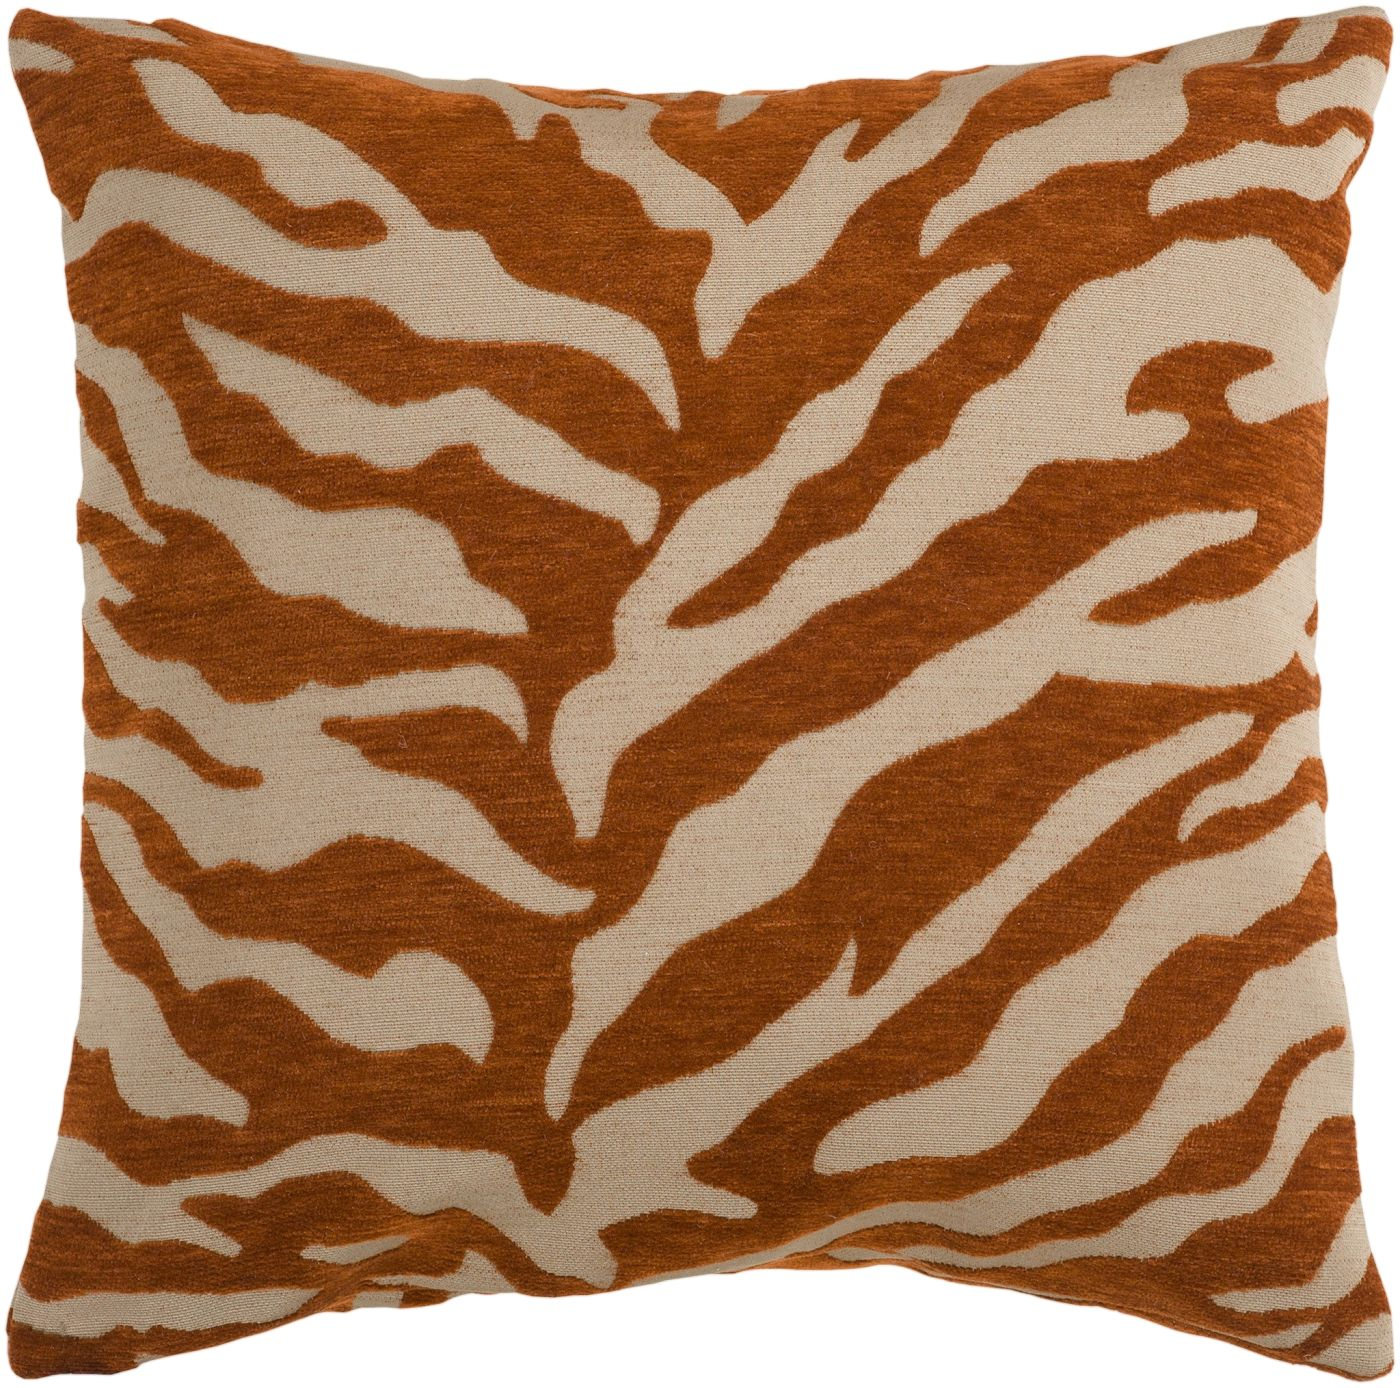 Astonishing Surya Blowout Sale Up To 70 Off Js028 2222D Velvet Zebra Throw Pillow Brown Orange Only Only 66 00 At Contemporary Furniture Warehouse Uwap Interior Chair Design Uwaporg